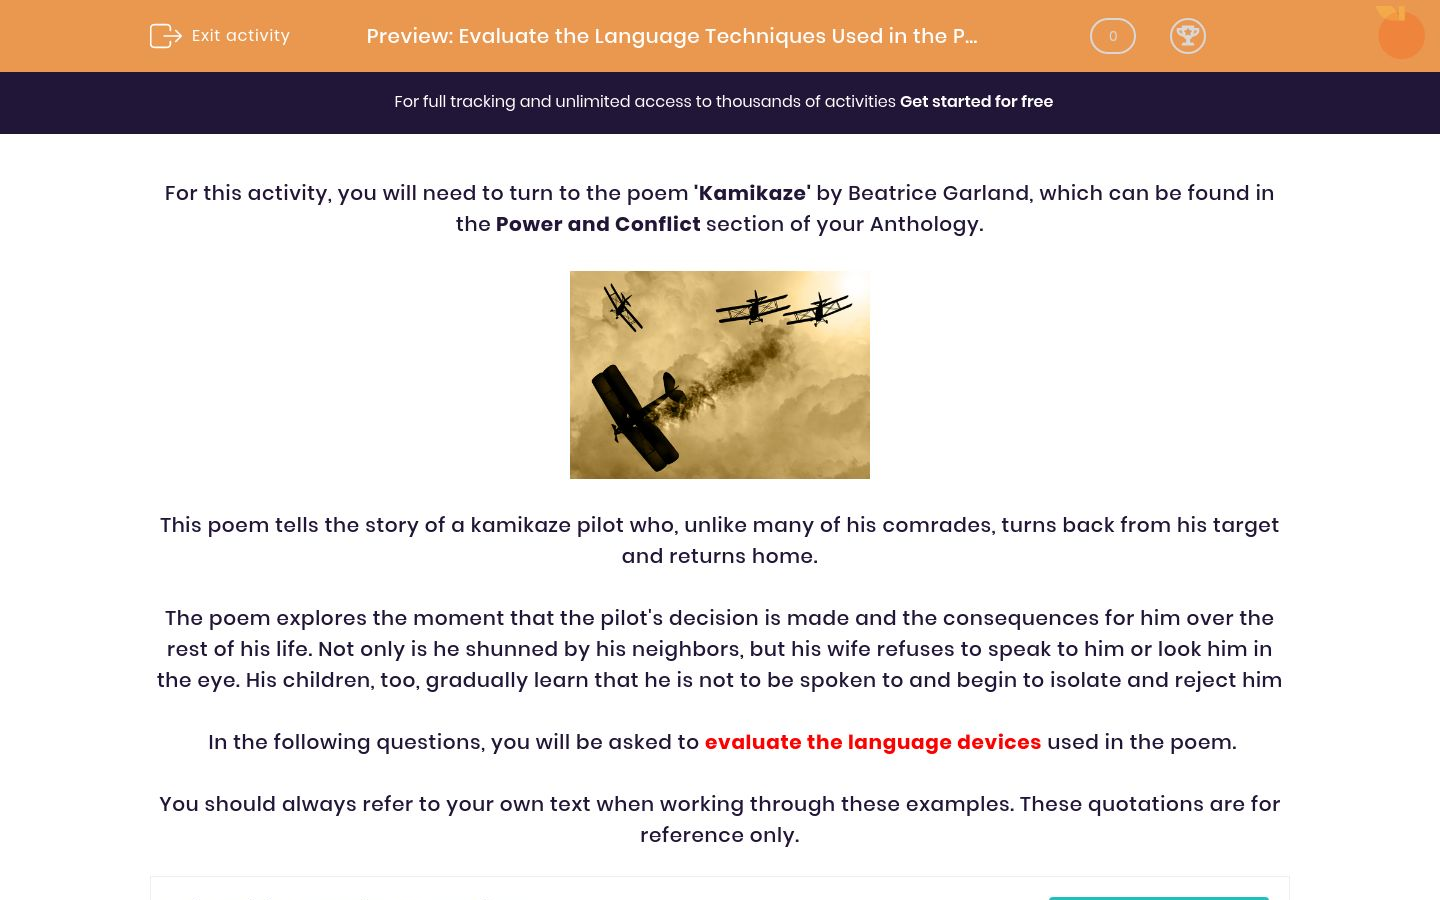 'Evaluate the Language Techniques Used in the Poem 'Kamikaze' by Beatrice Garland' worksheet